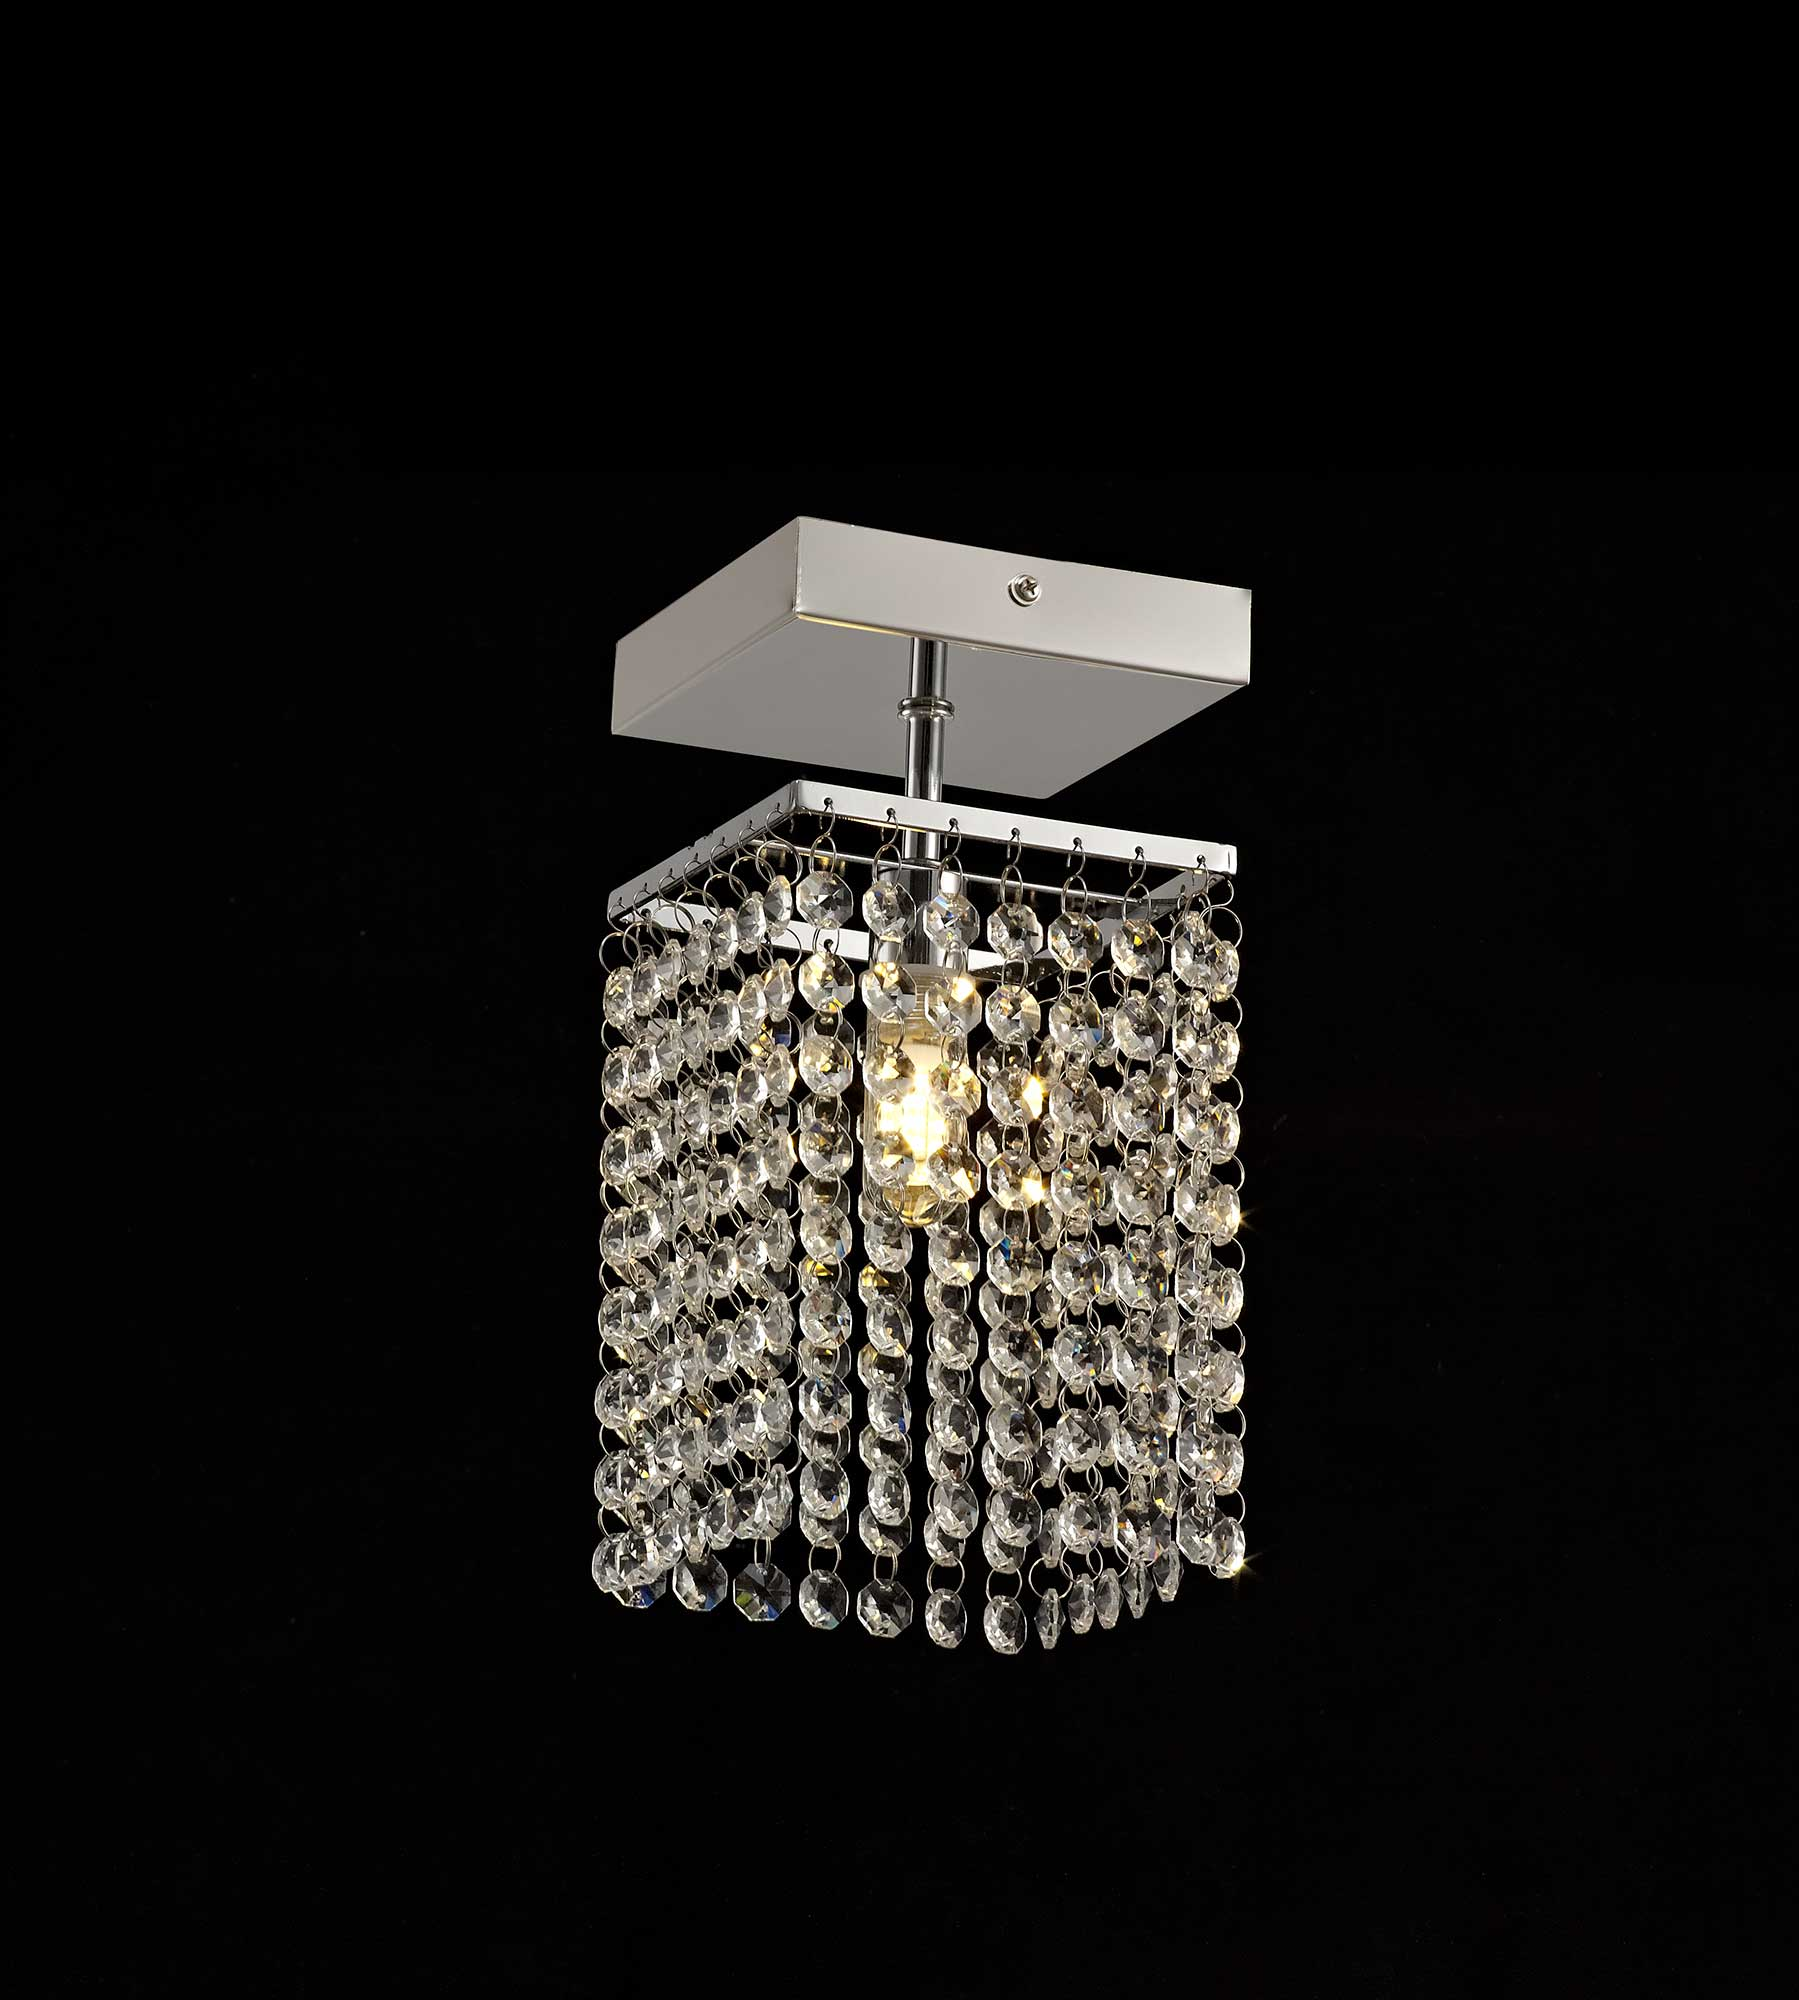 Ceiling Light, 1 x G9, IP44, Polished Chrome/Crystal